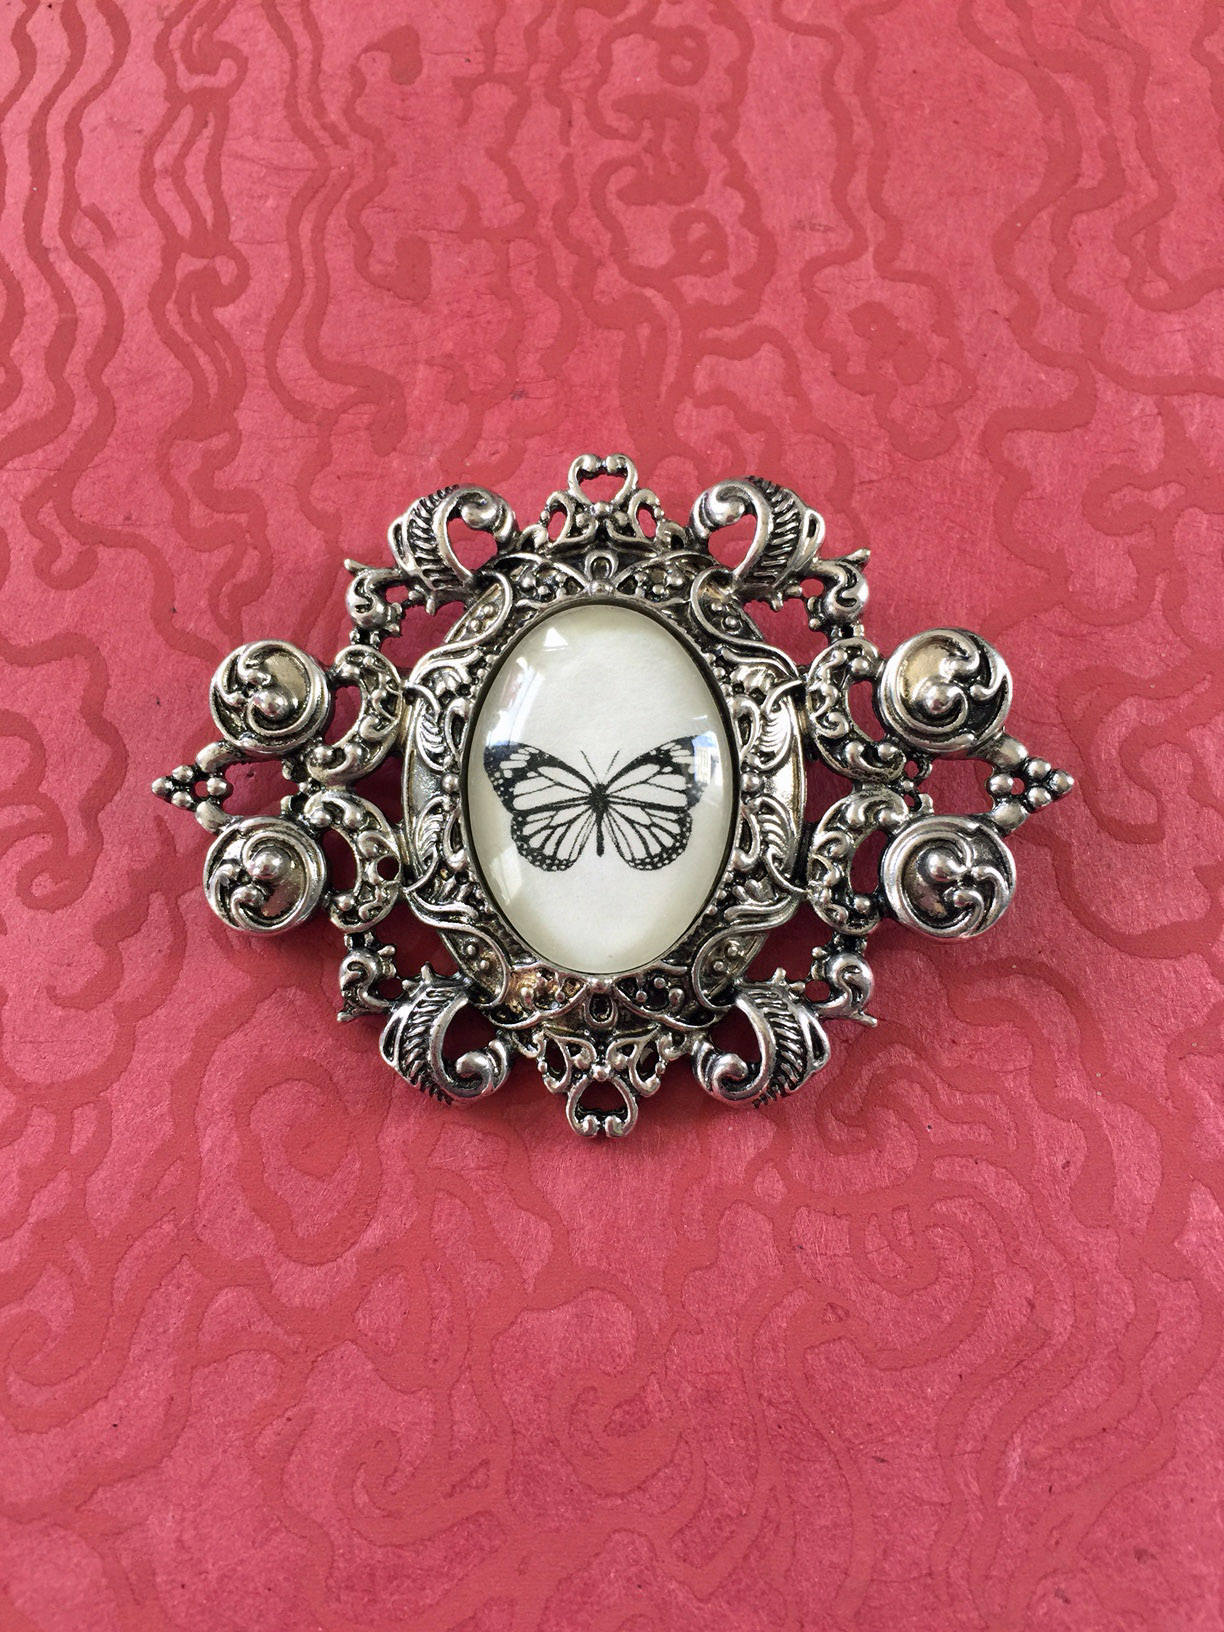 BUTTERFLY Brooch - Silhouette Jewelry